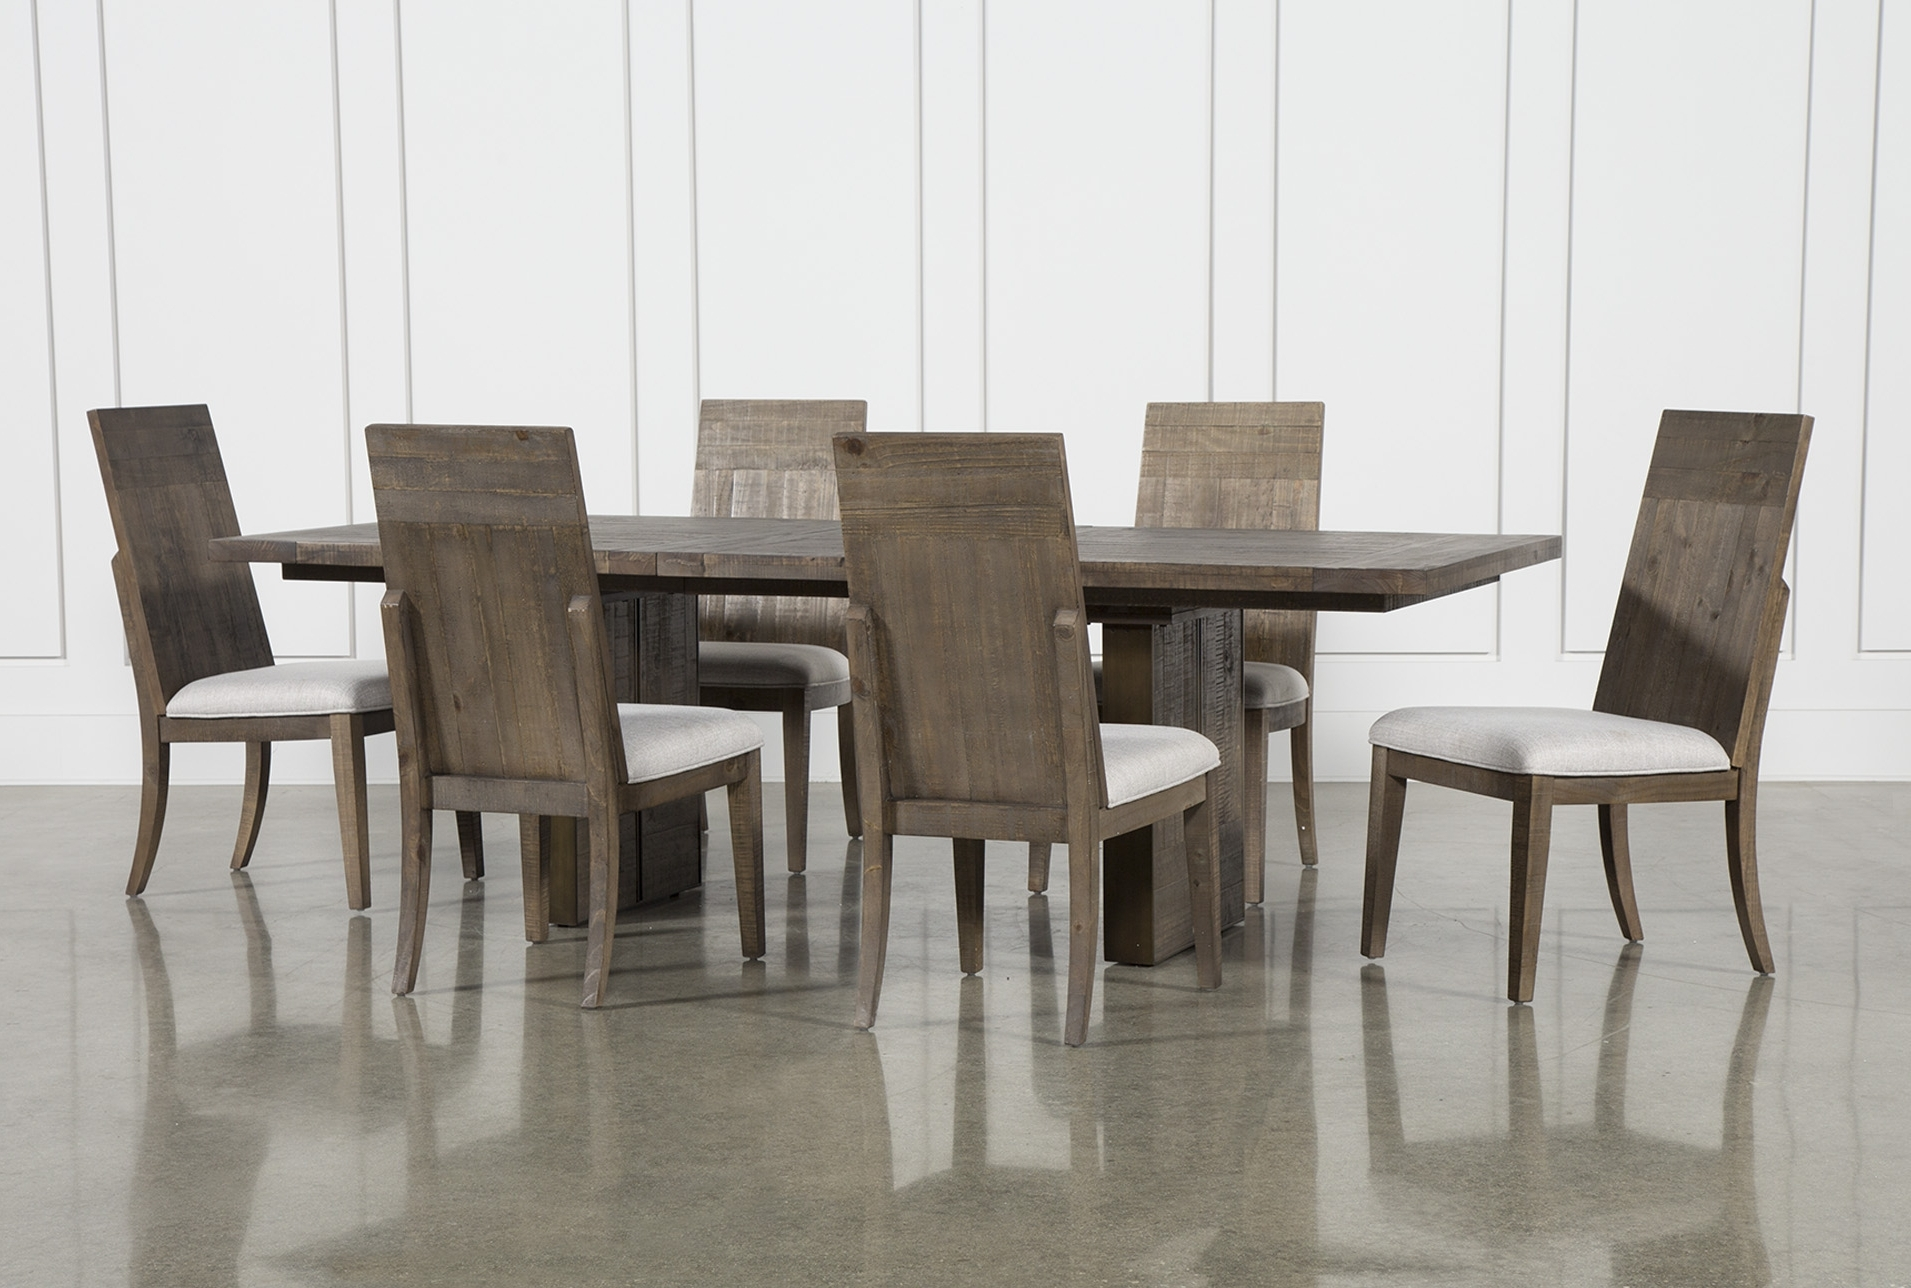 Most Recently Released Chandler Fabric Side Chair Intended For Candice Ii 7 Piece Extension Rectangular Dining Sets With Slat Back Side Chairs (View 16 of 25)